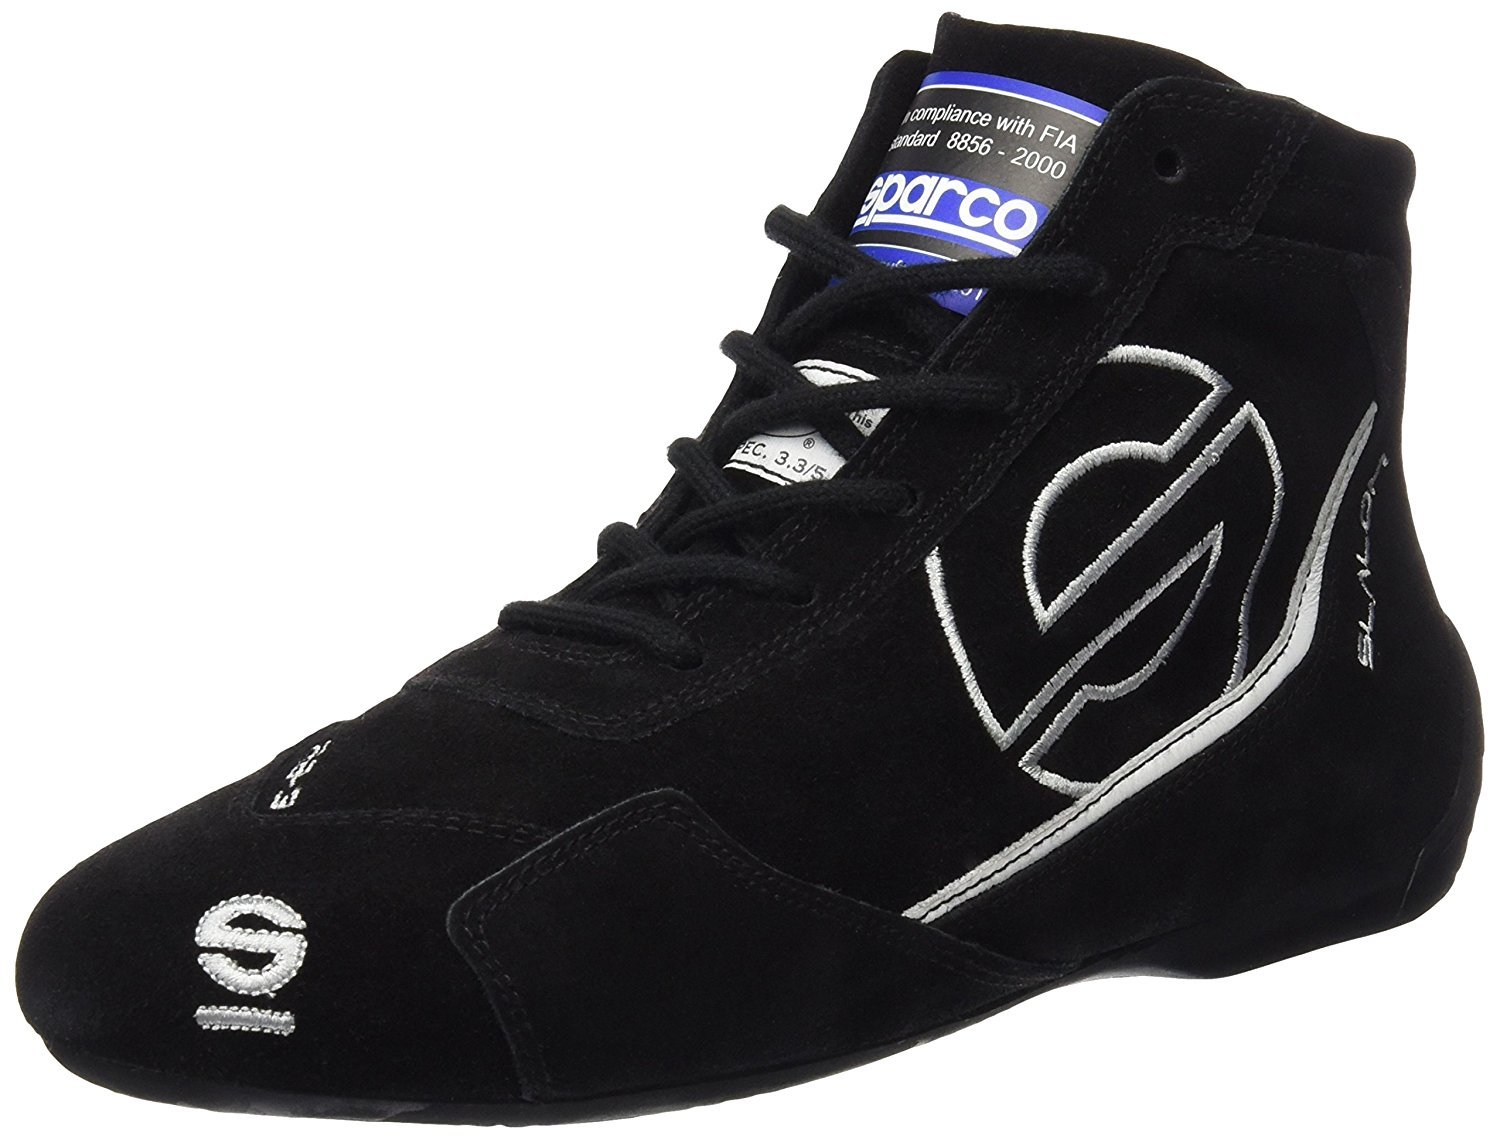 Sparco Slalom RB-3 Racing Shoes 01235 Size 39, Red